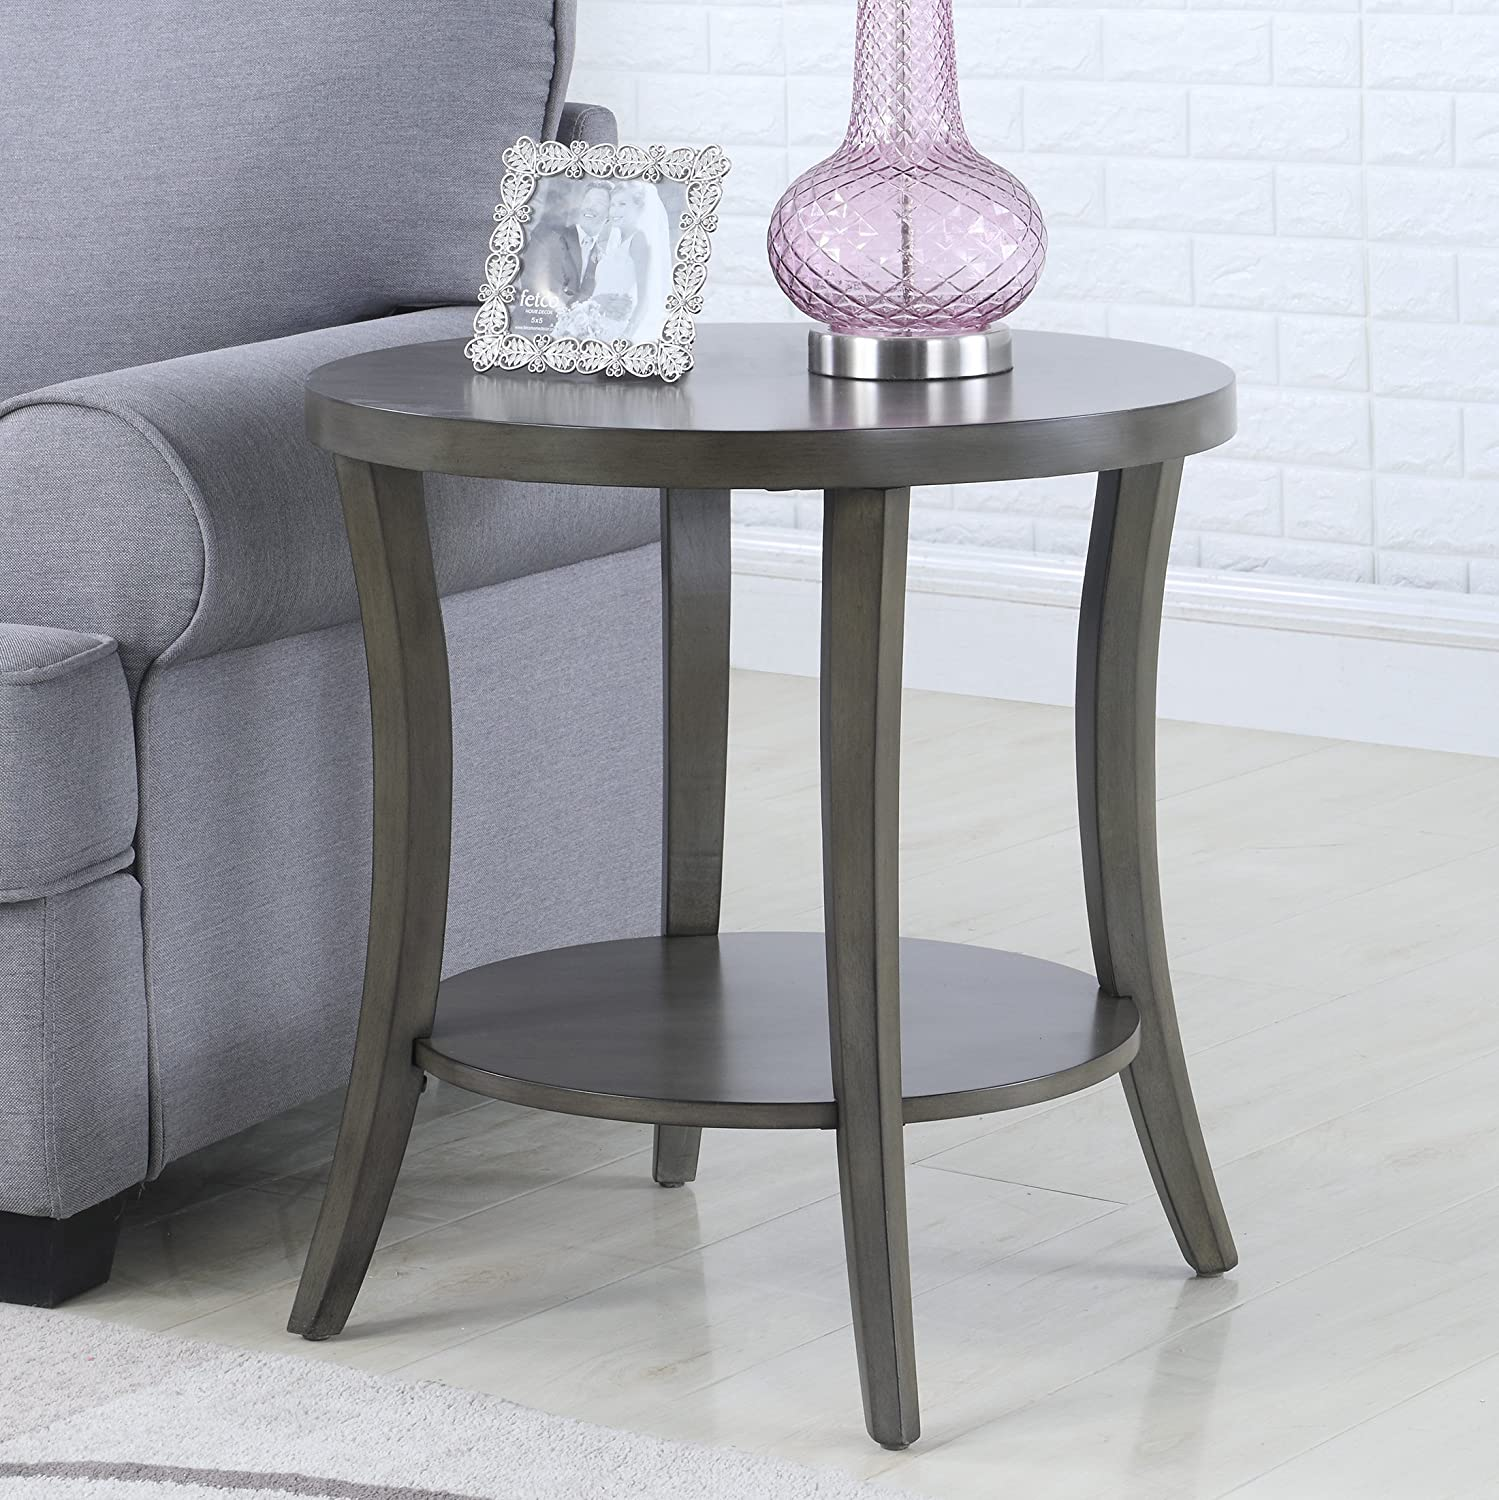 Roundhill Furniture Perth Contemporary Oval Shelf End Table, Gray